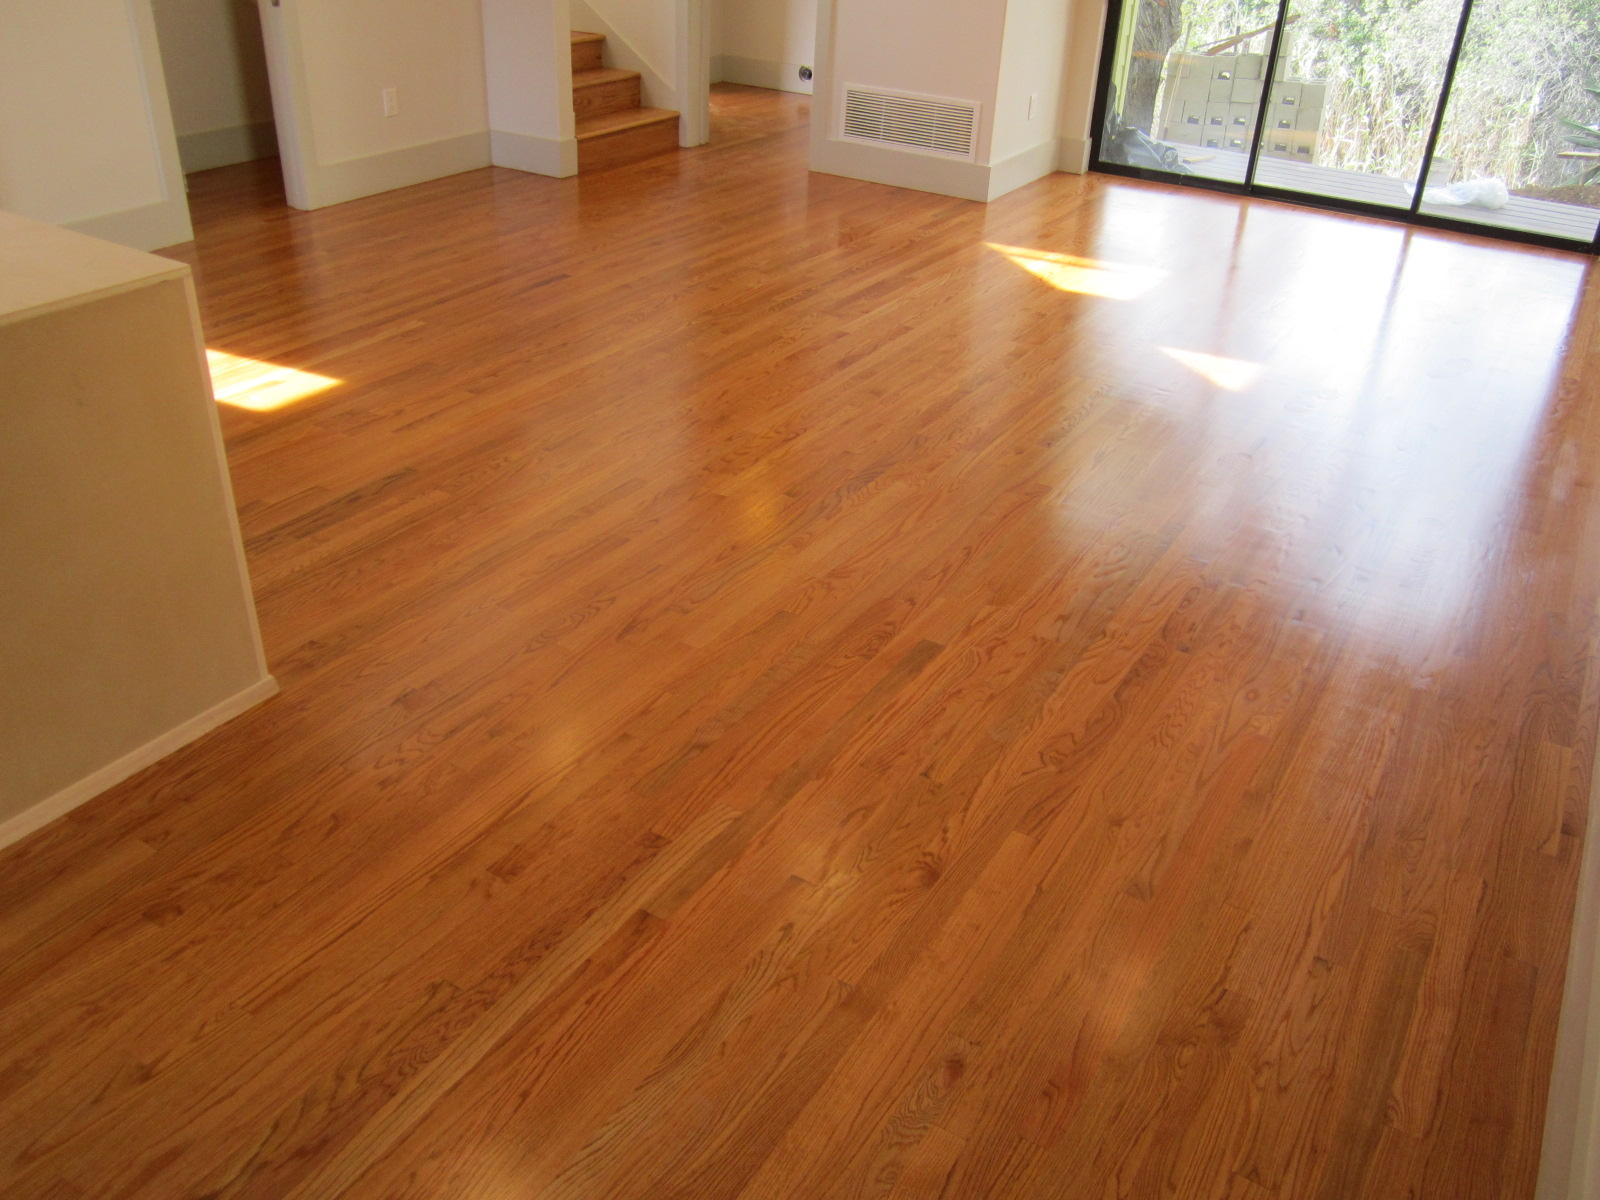 Modern concrete and hardwood floor reo for House of floors